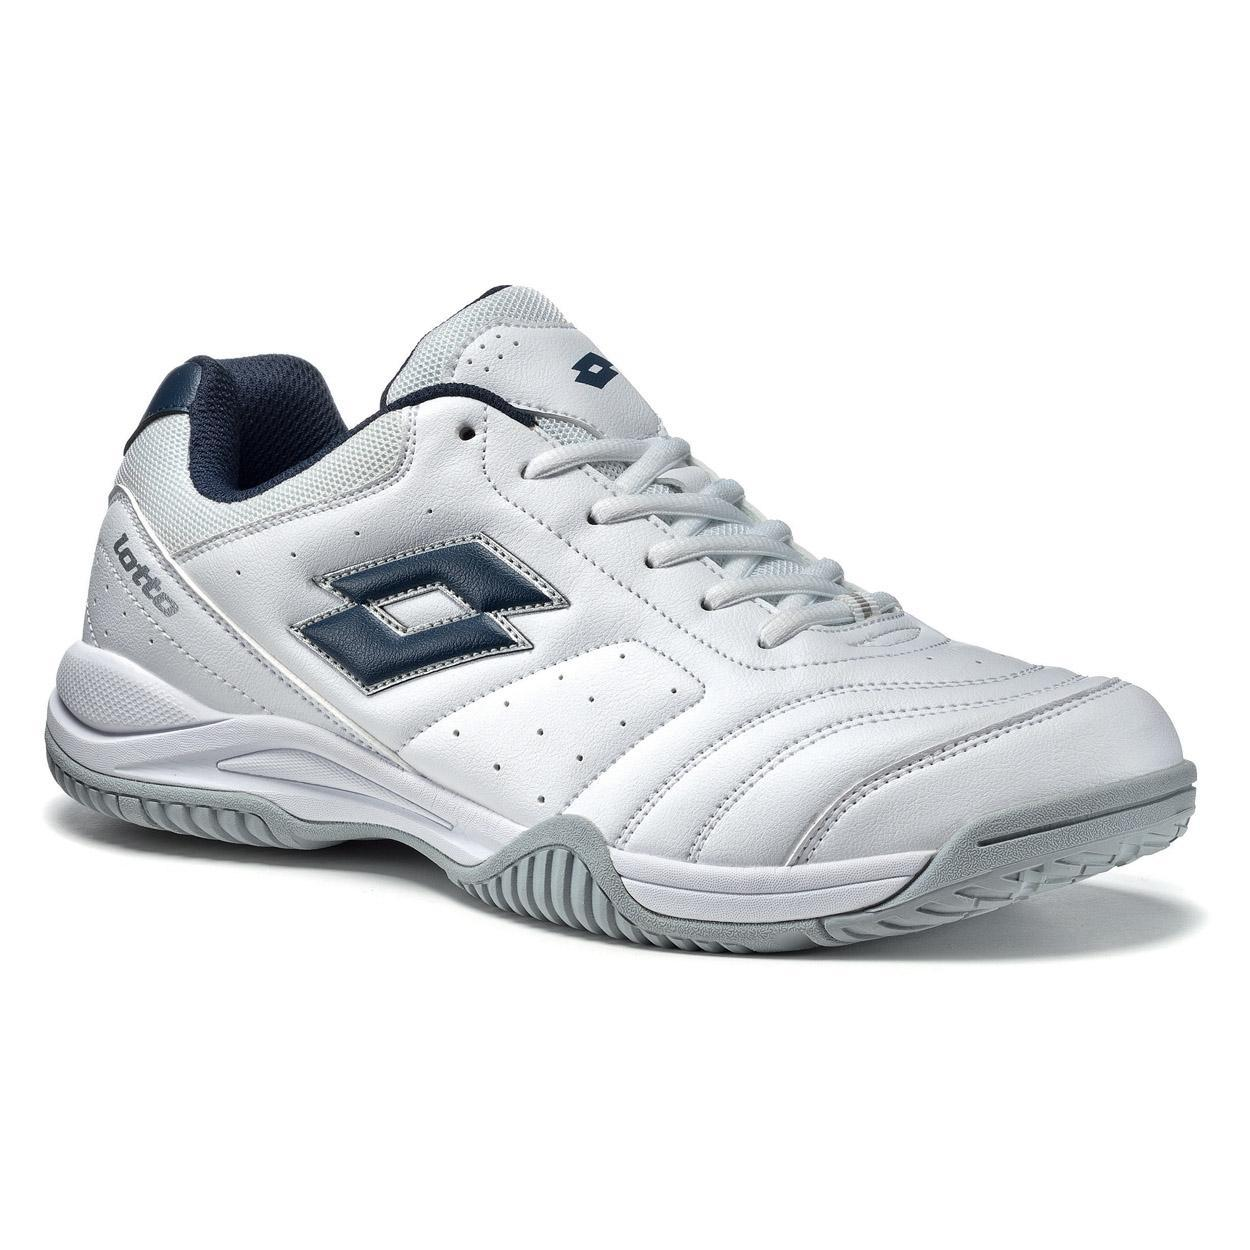 Lotto Tennis Shoes Uk